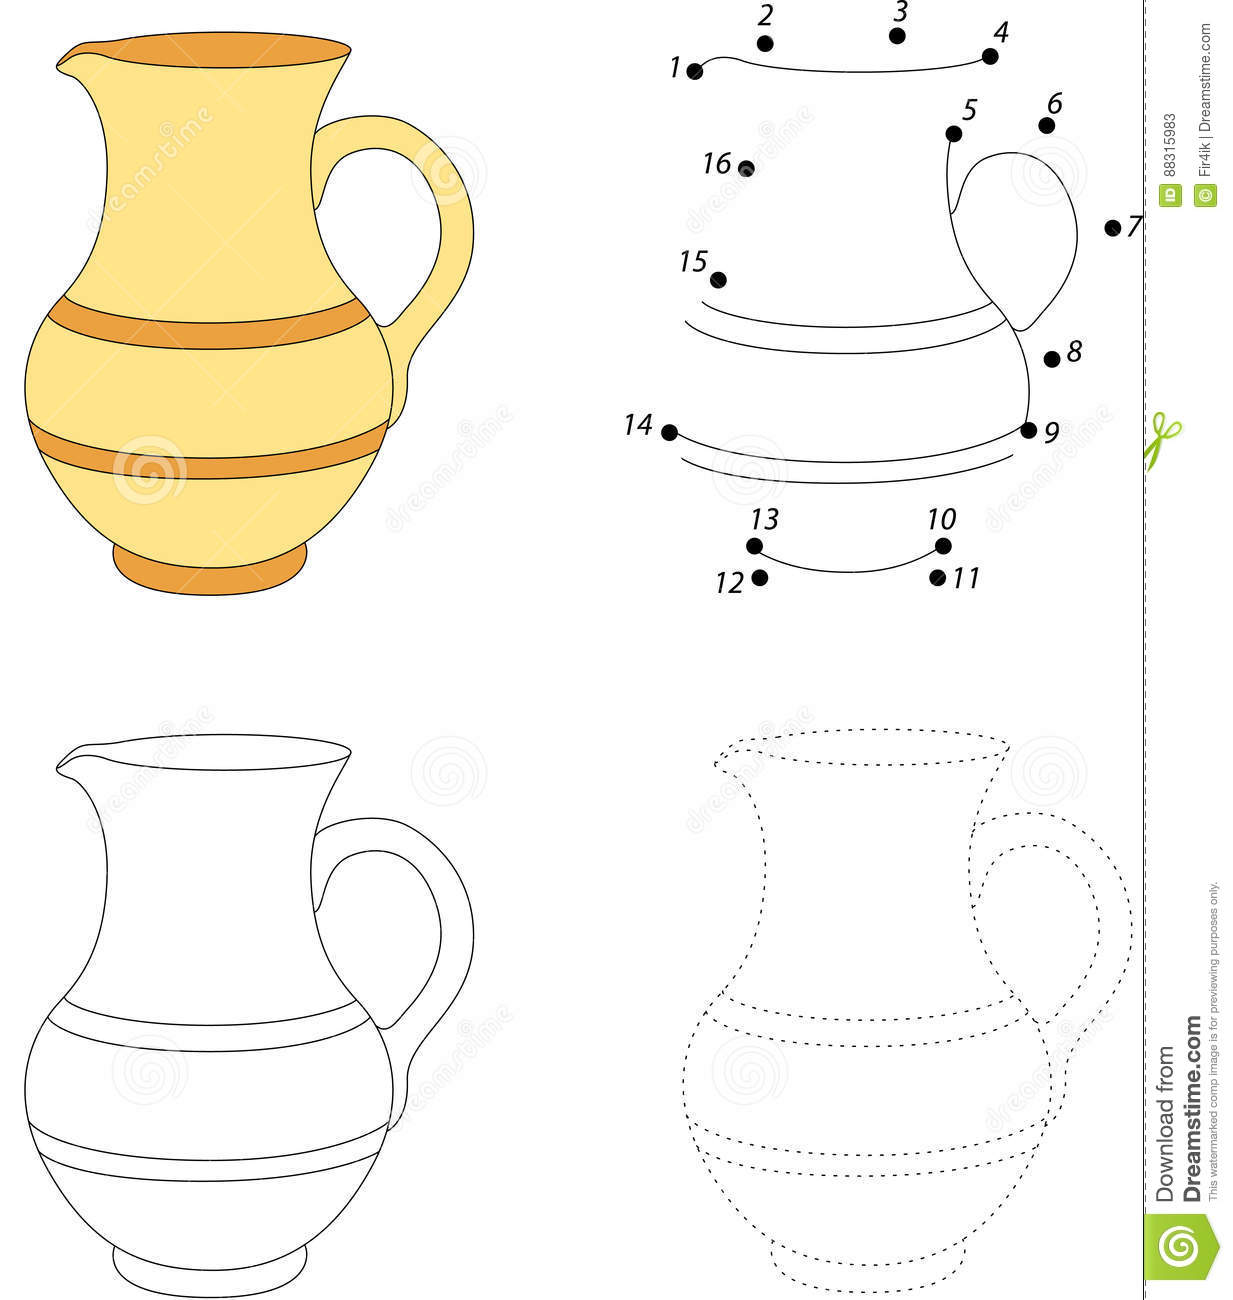 Cartoon Jug Dot To Dot Game For Kids Stock Vector Illustration Of Count Line 88315983